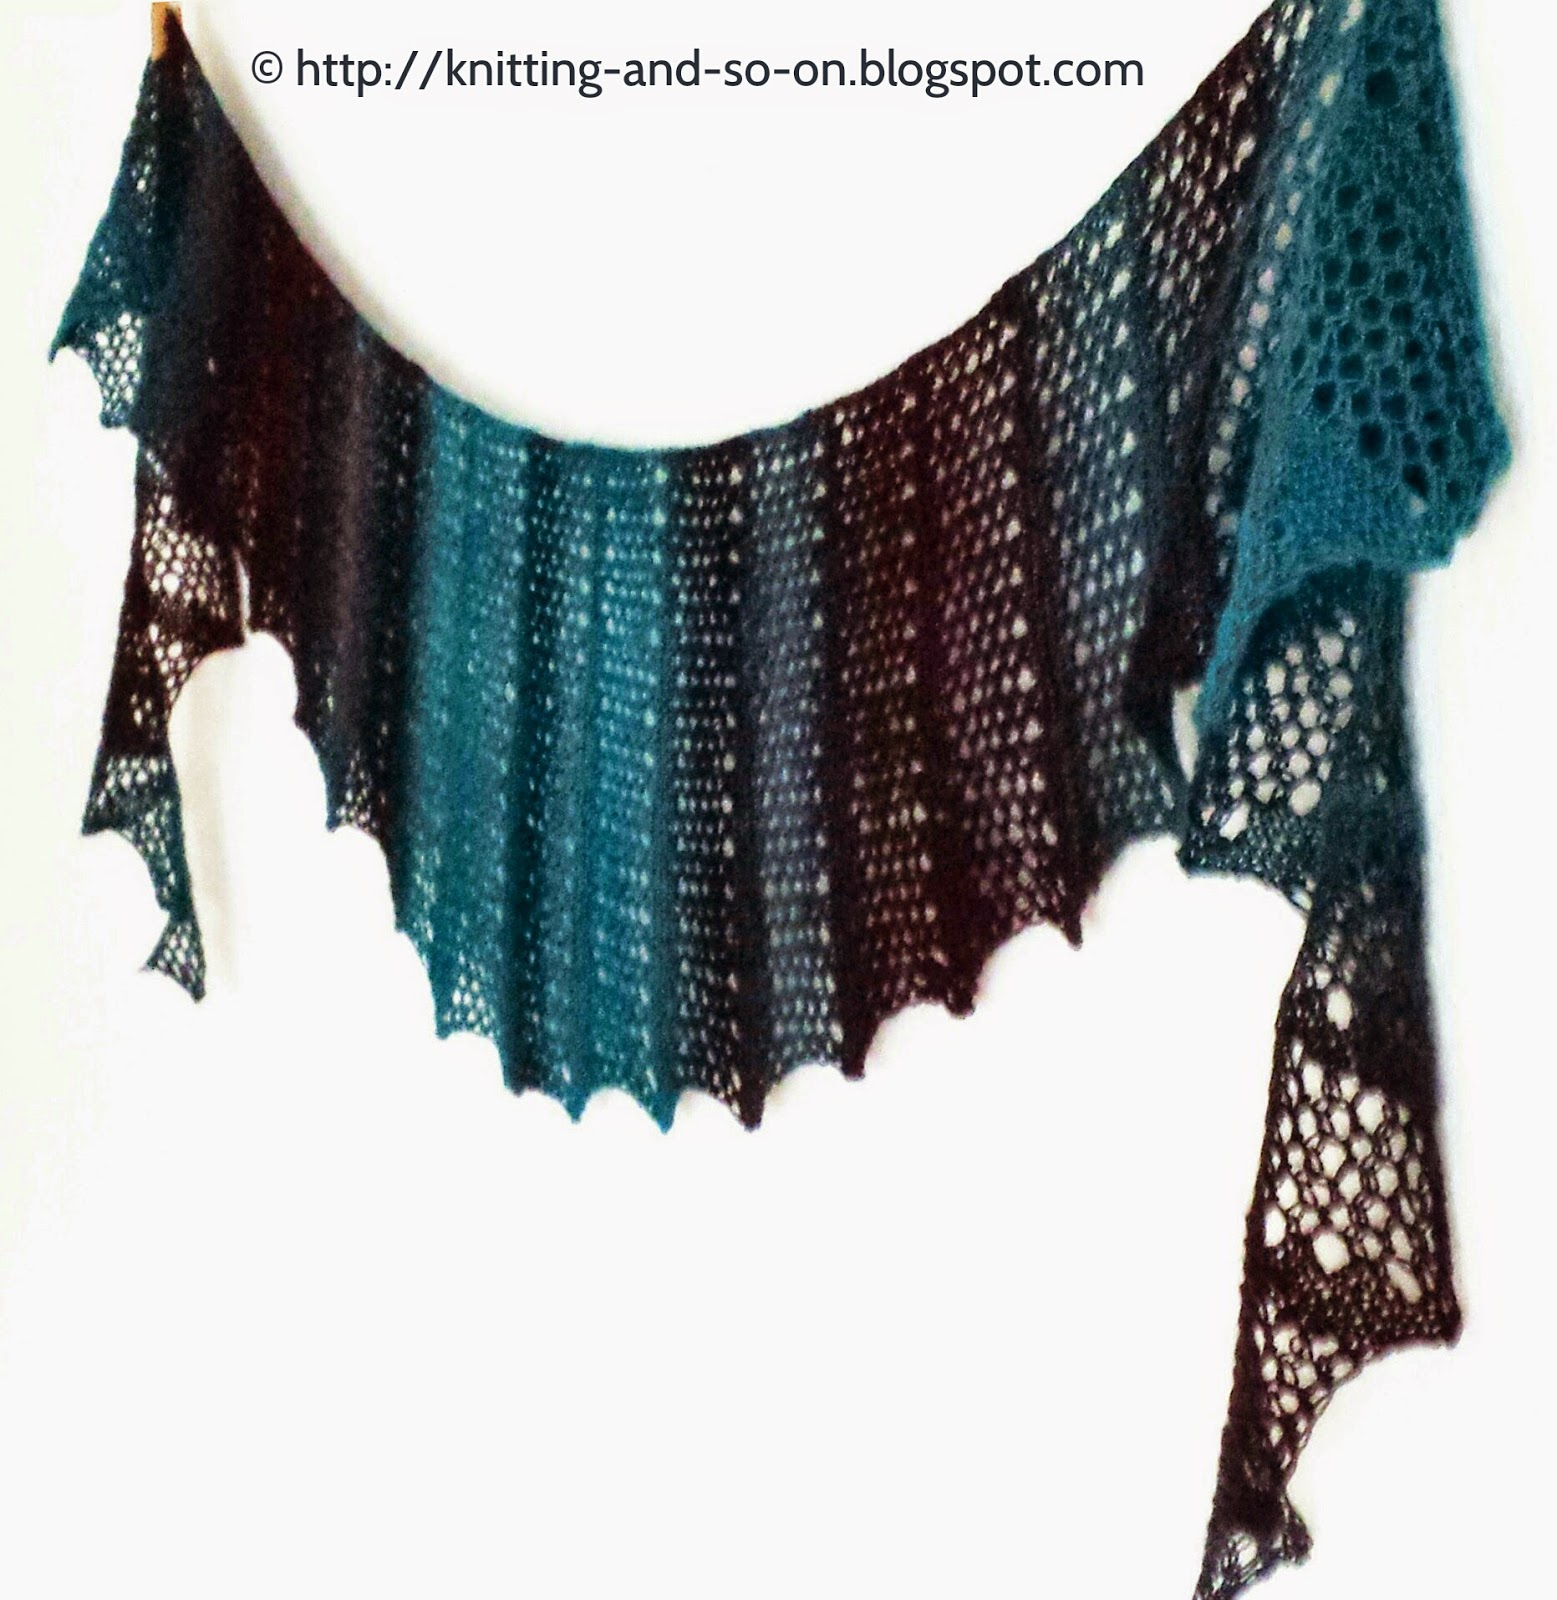 Free Knitting Pattern For Short Row Scarf : Knitting and so on: Seifenblasen Lace Scarf